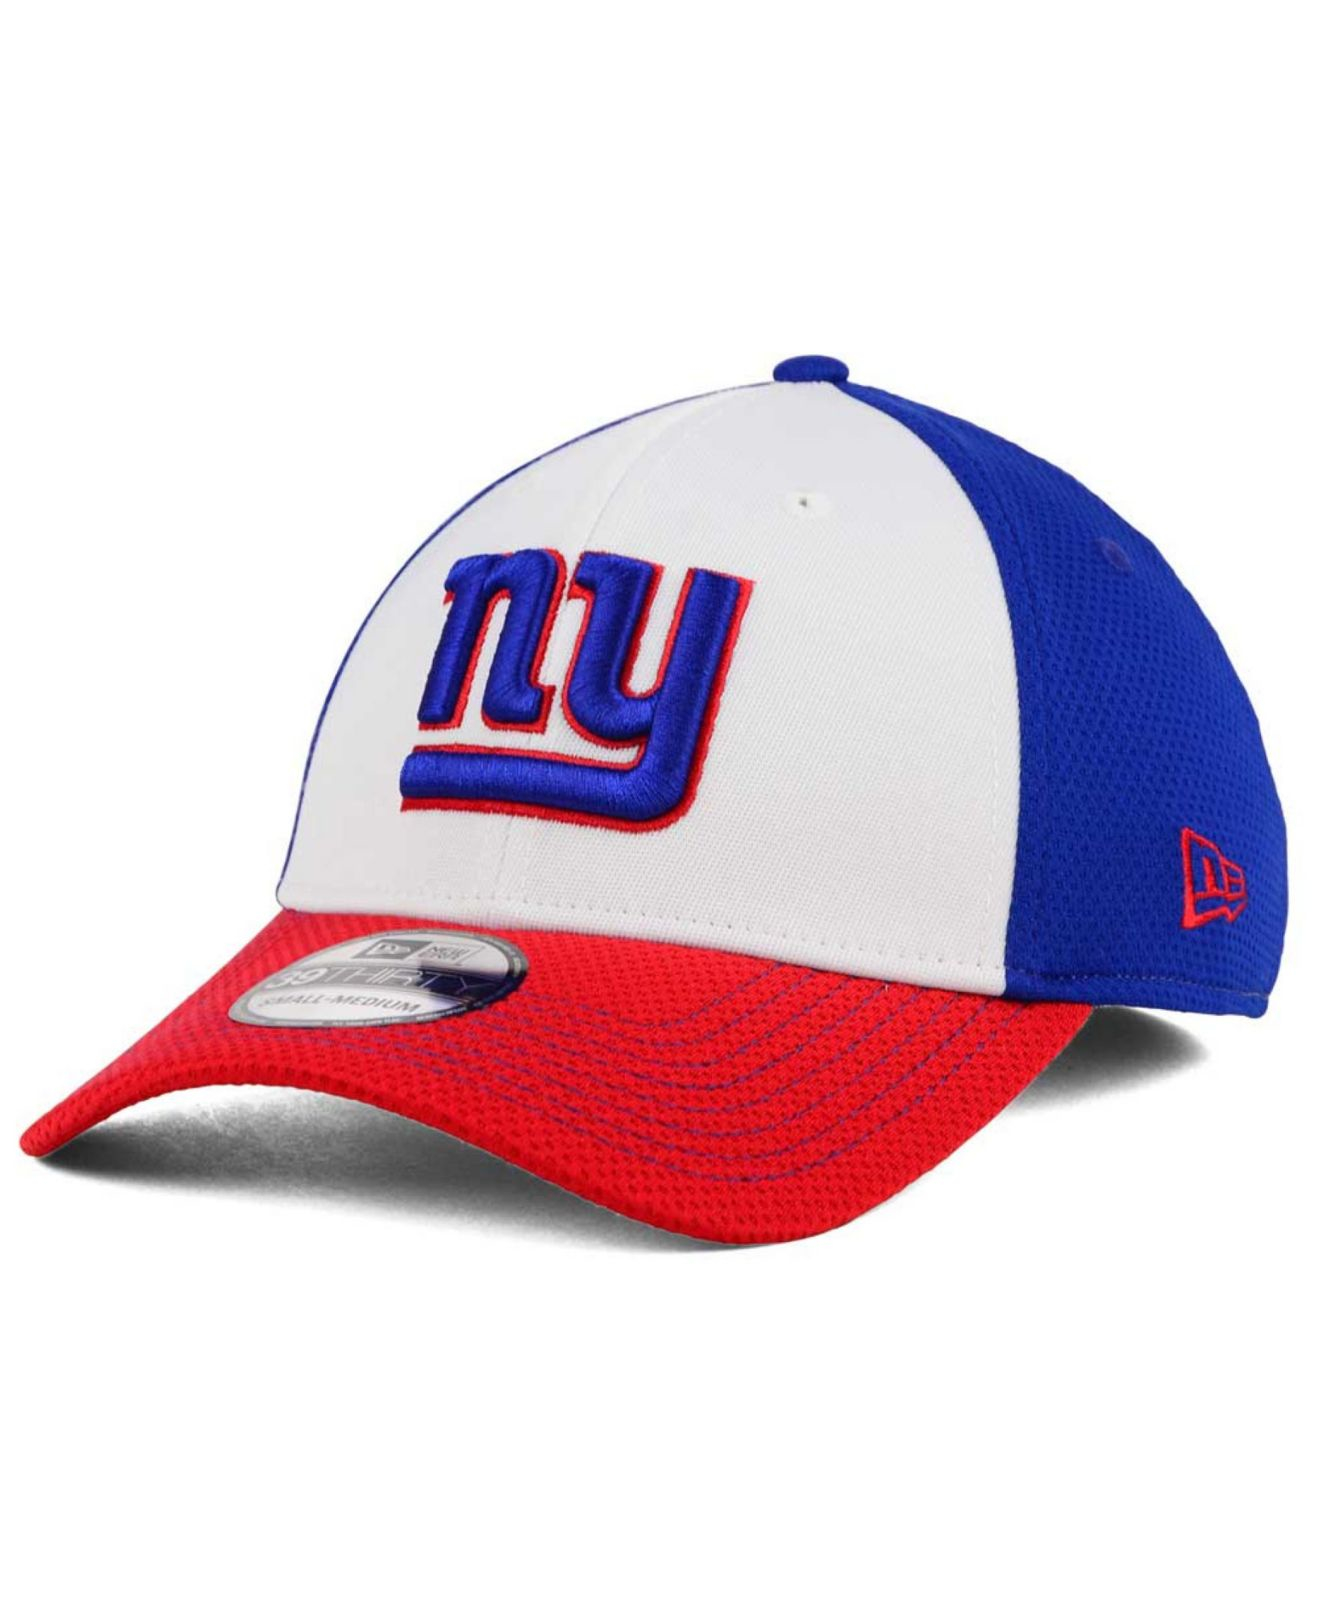 e5892c9389f new-era-royalblue-new-york-giants-chase-white-front-mesh-39thirty-cap -product-1-505586234-normal.jpeg